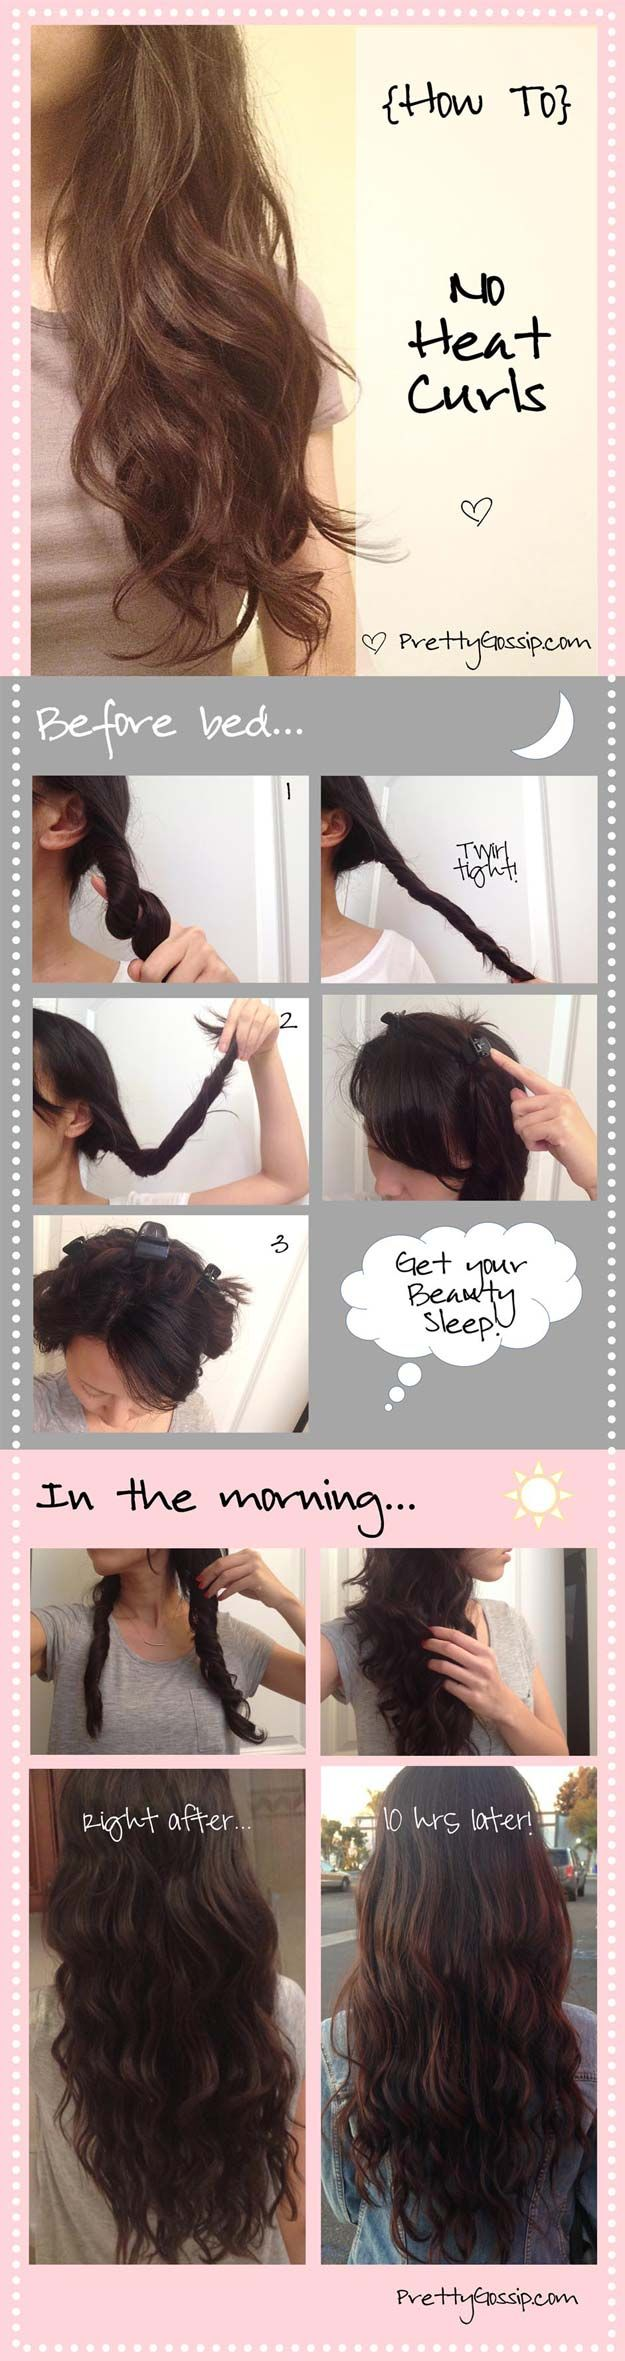 Easy Beachy Waves Tutorials for Hair - Get Beachy Waves with No Heat - DIY And E...